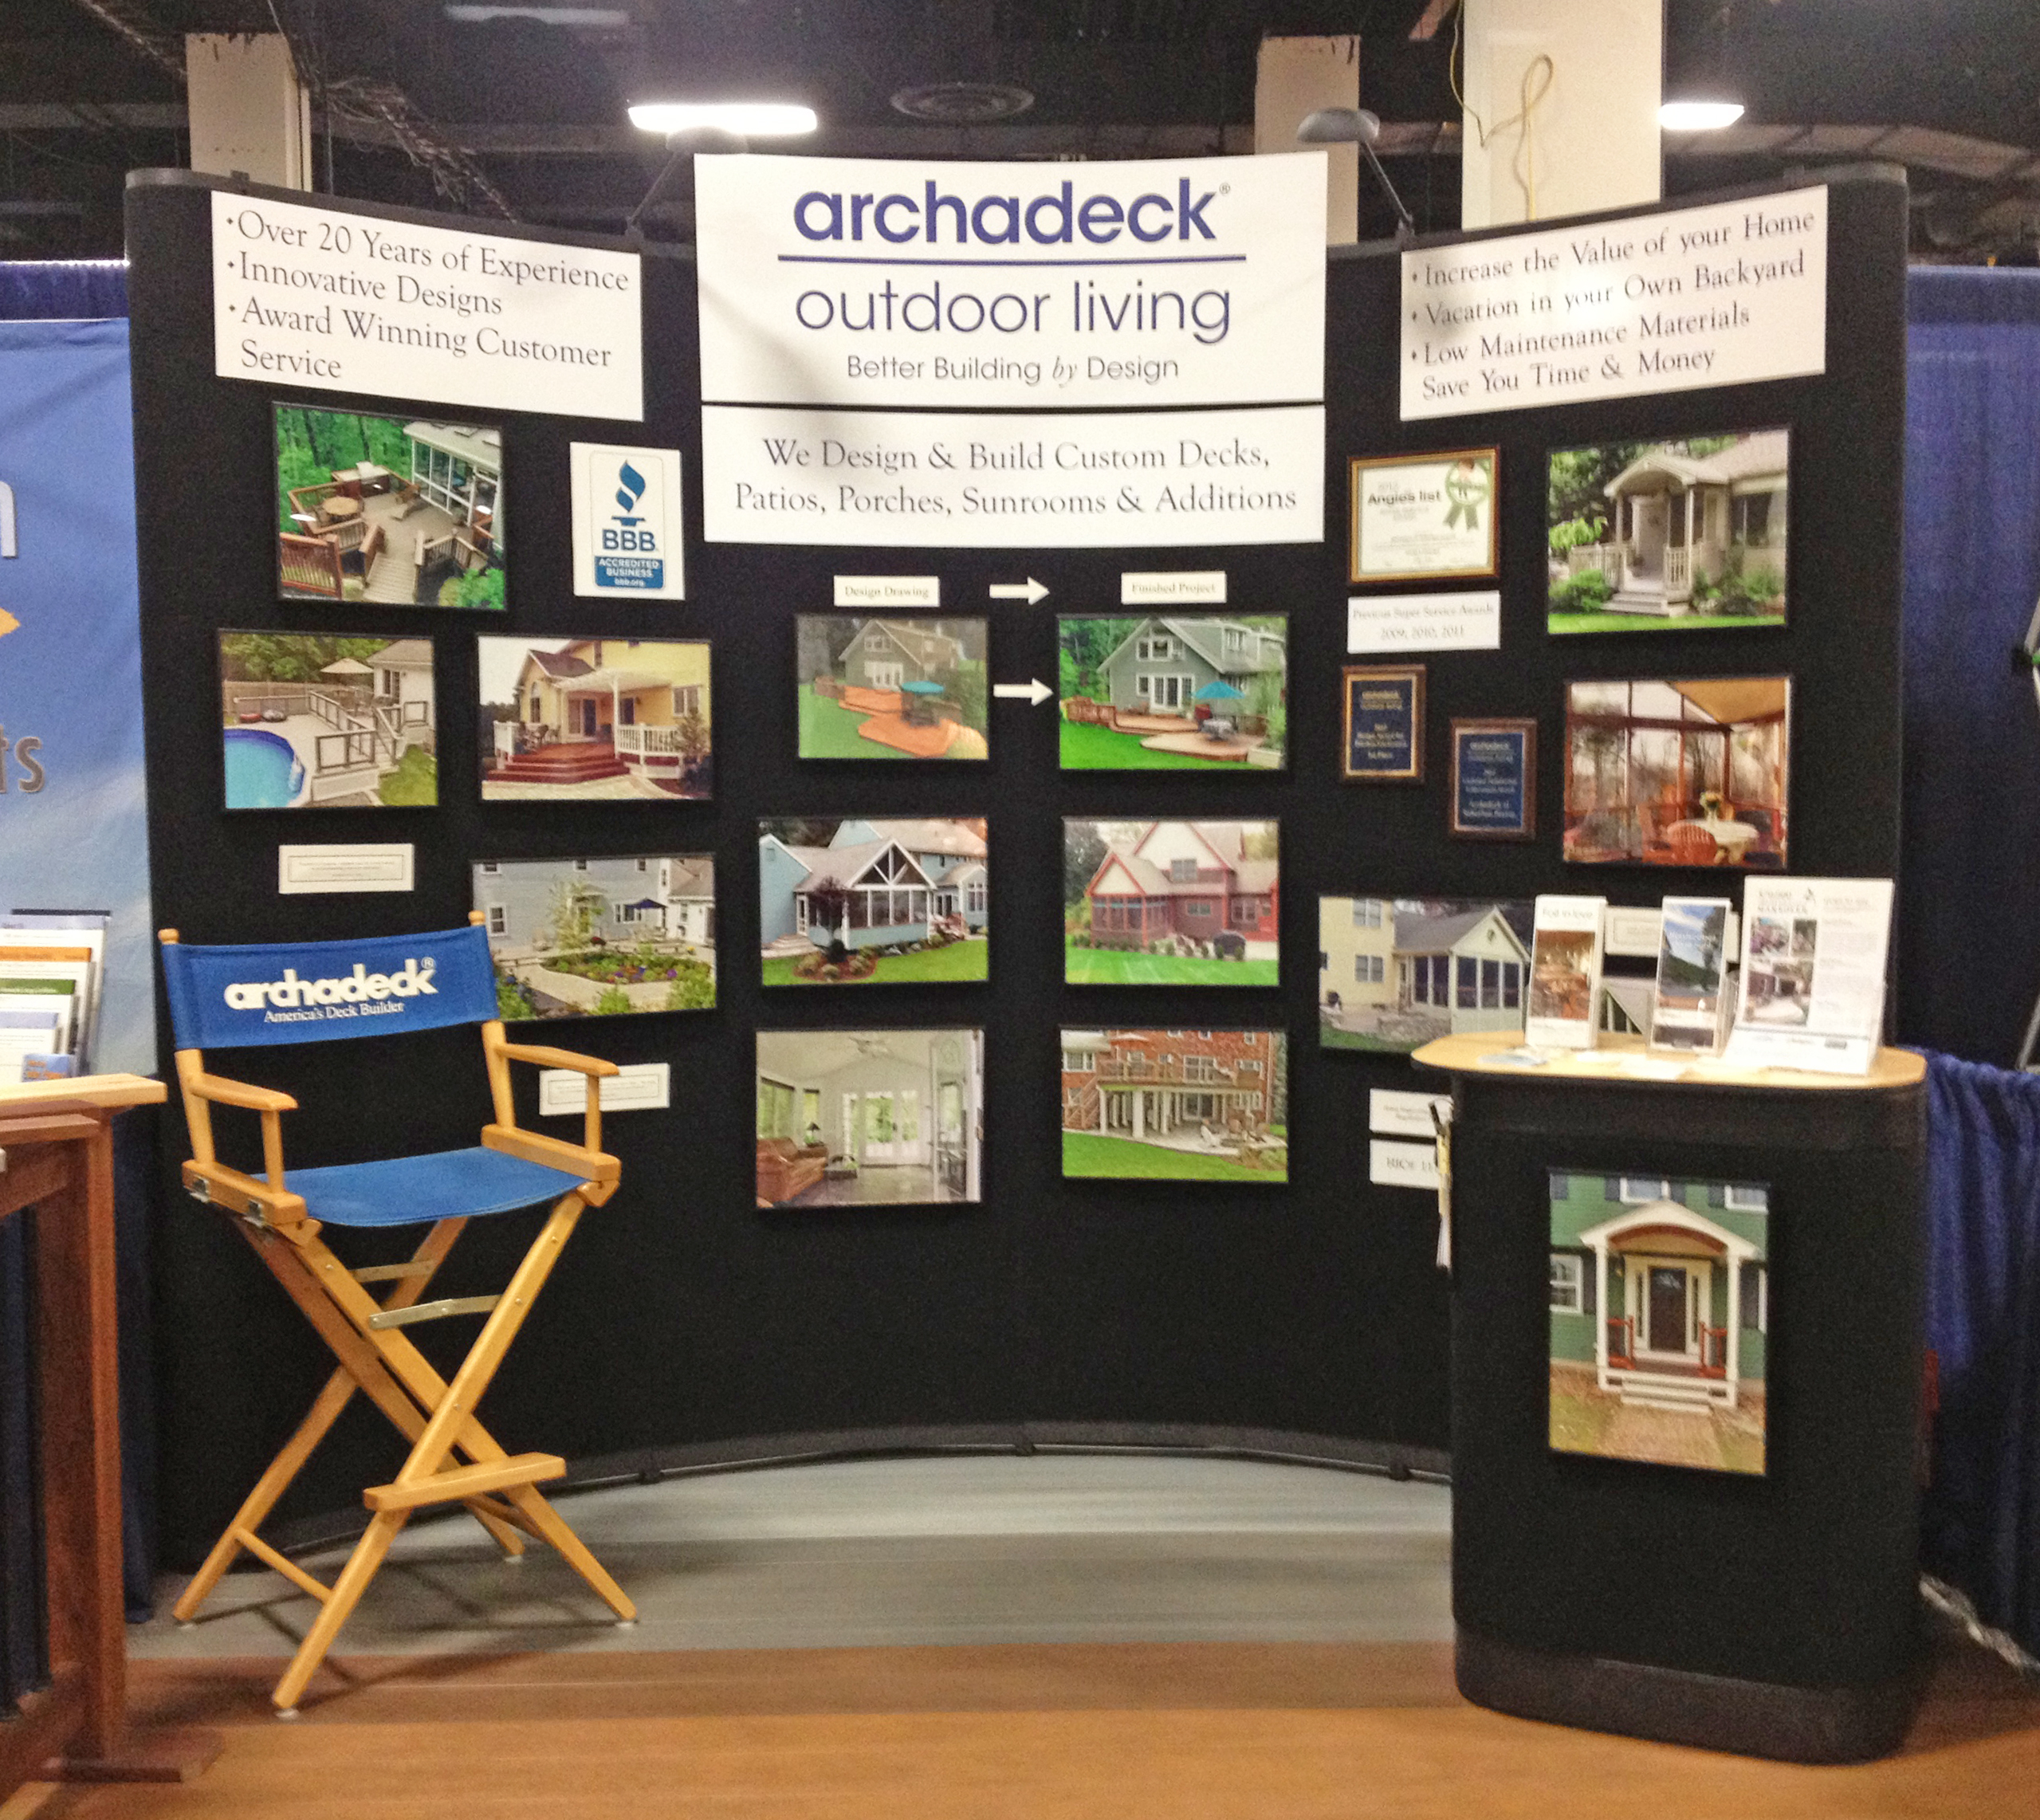 Home and trade shows custom decks porches patios sunrooms and more - Expo home design idea ...